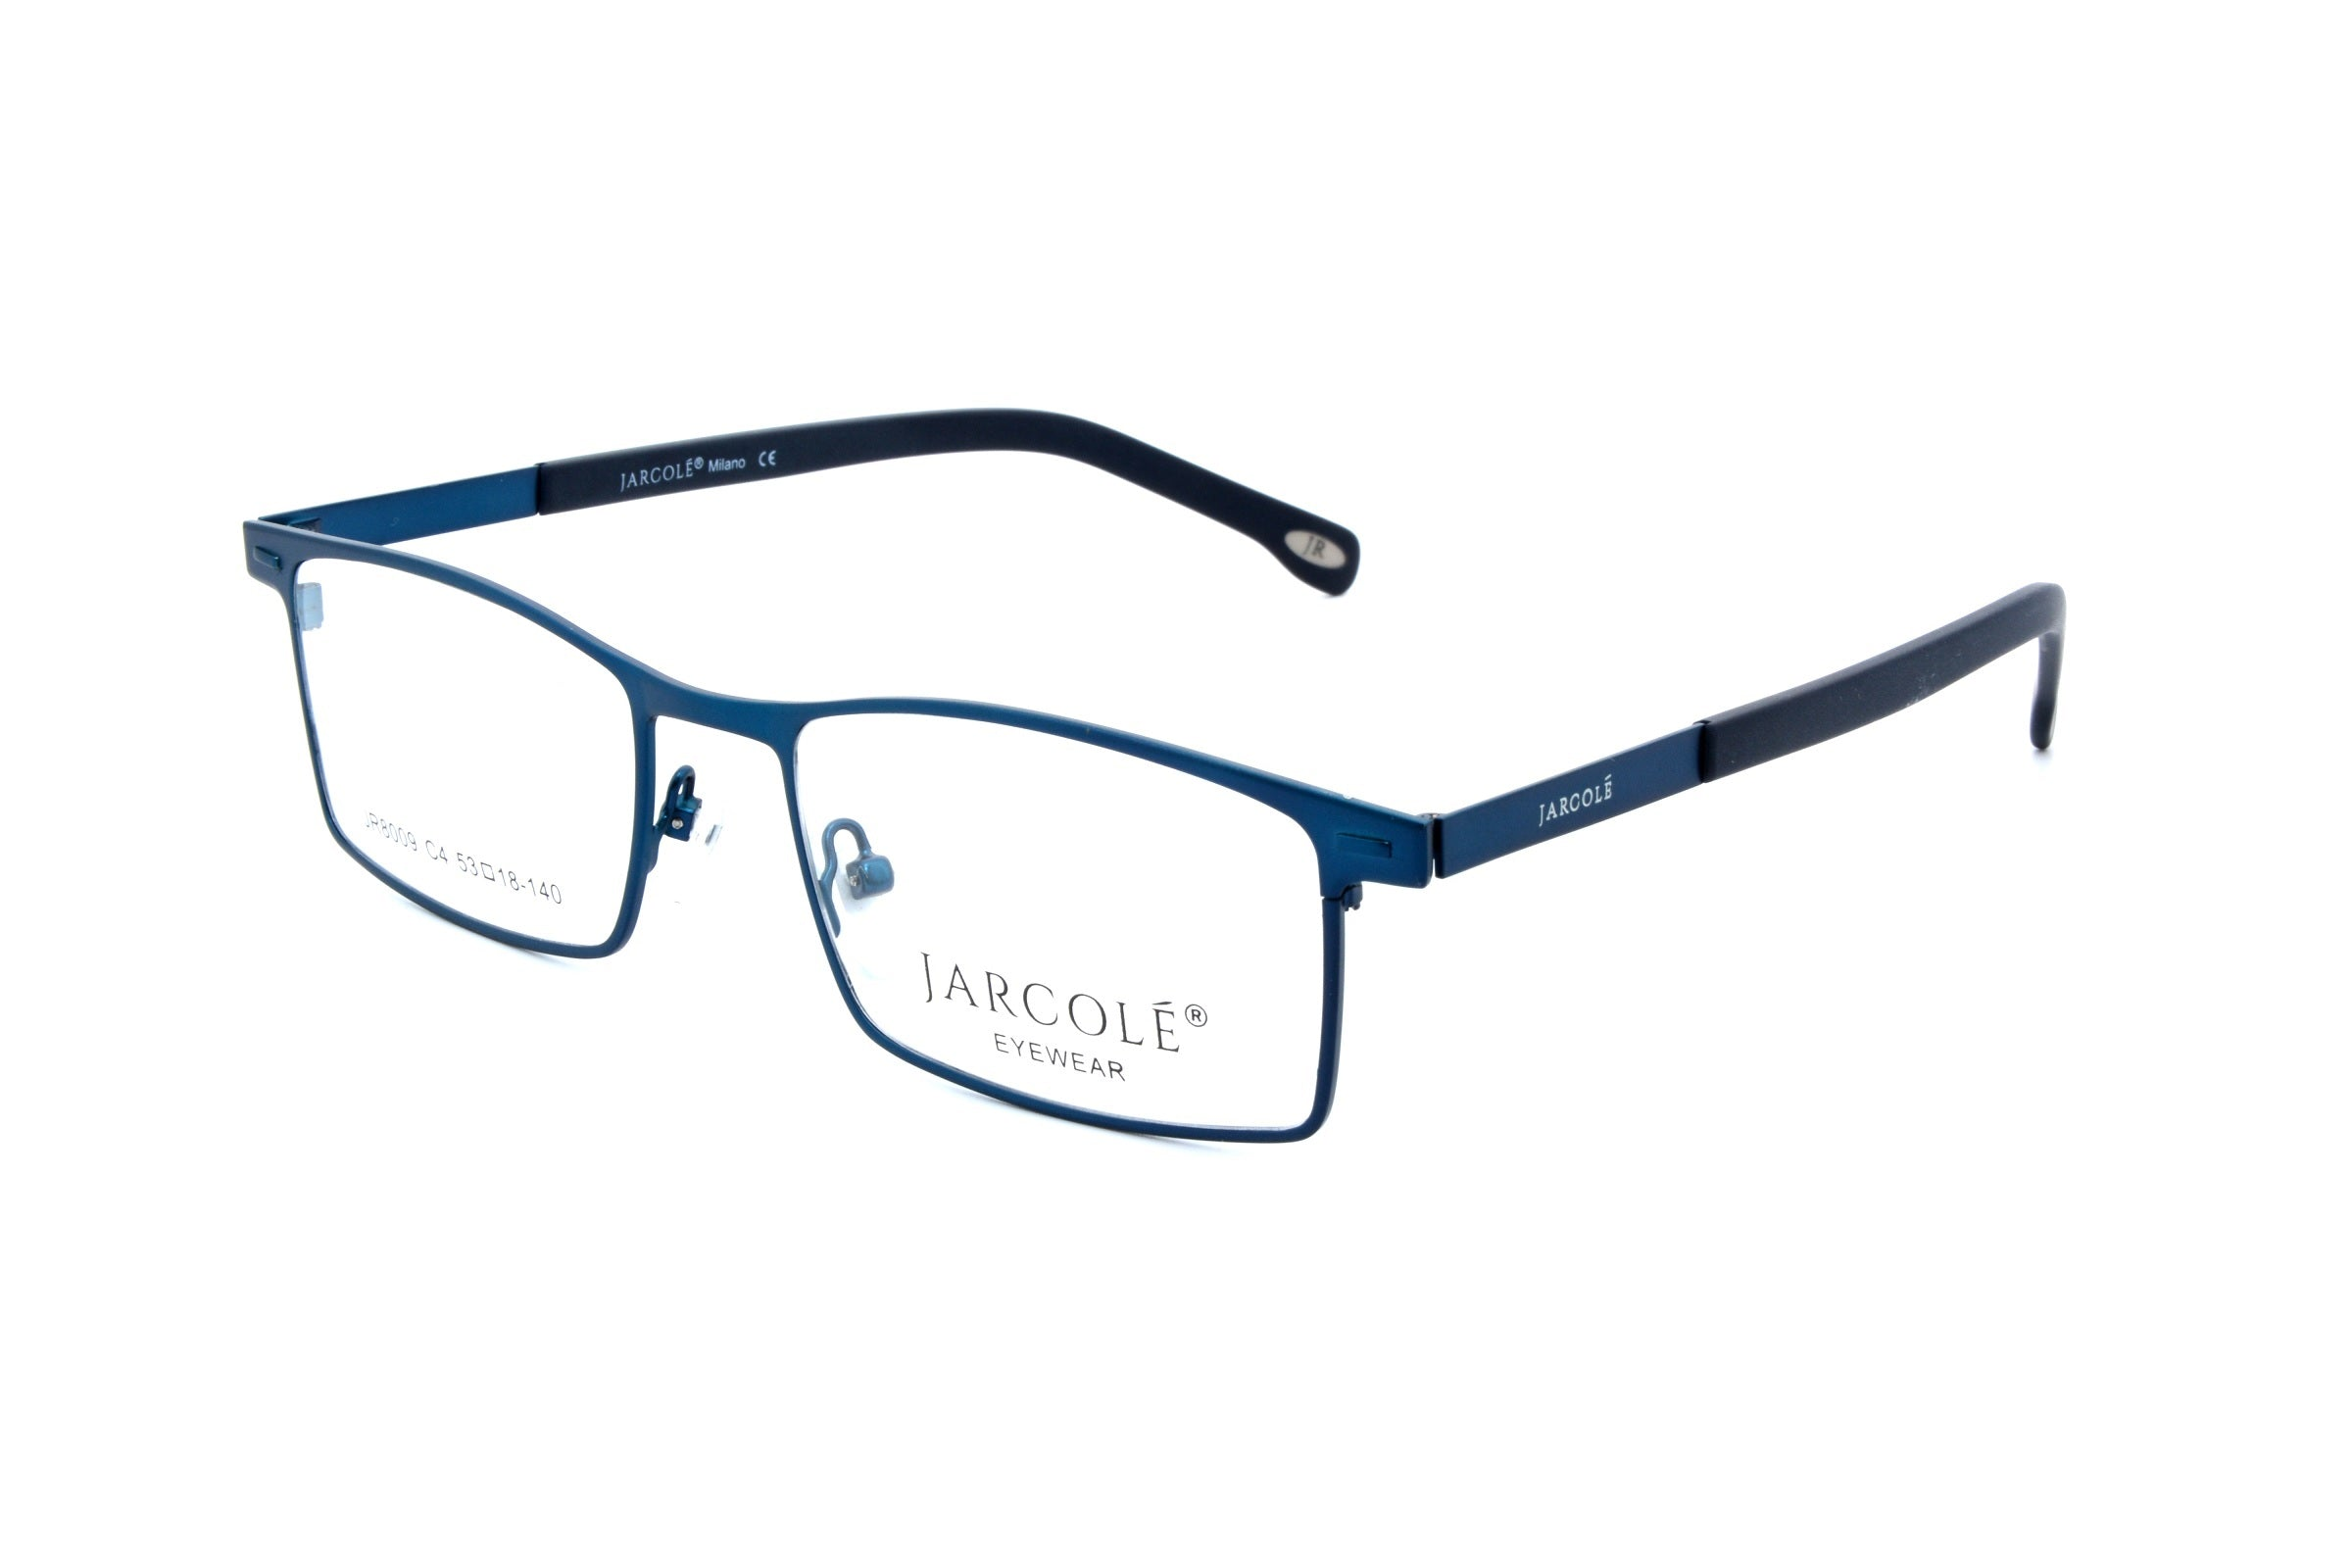 Jarcole eyewear 8009, C4 - Optics Trading